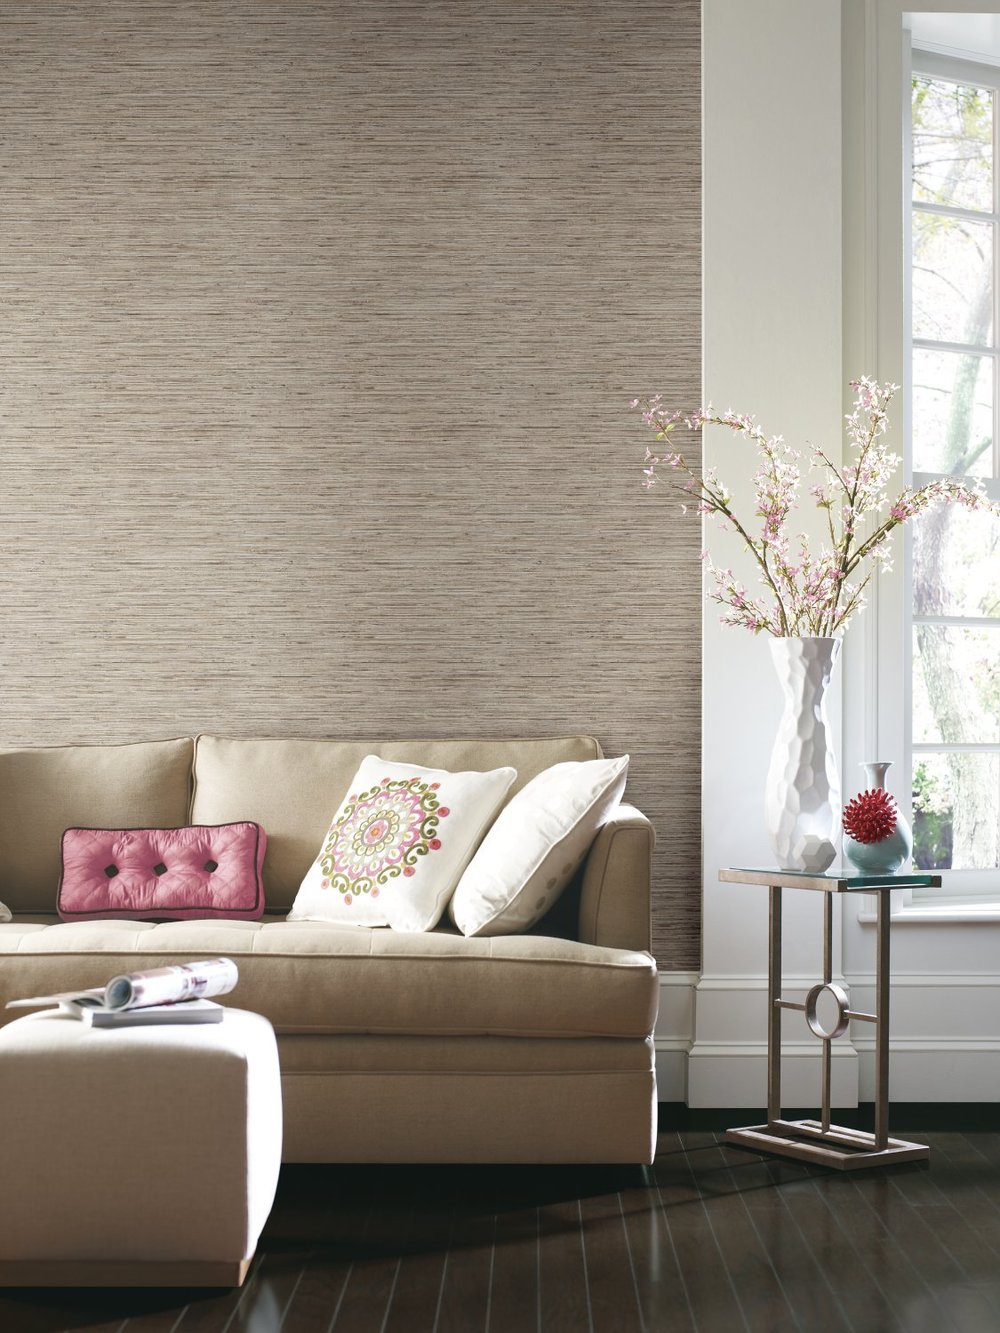 grasscloth wallpaper design for home